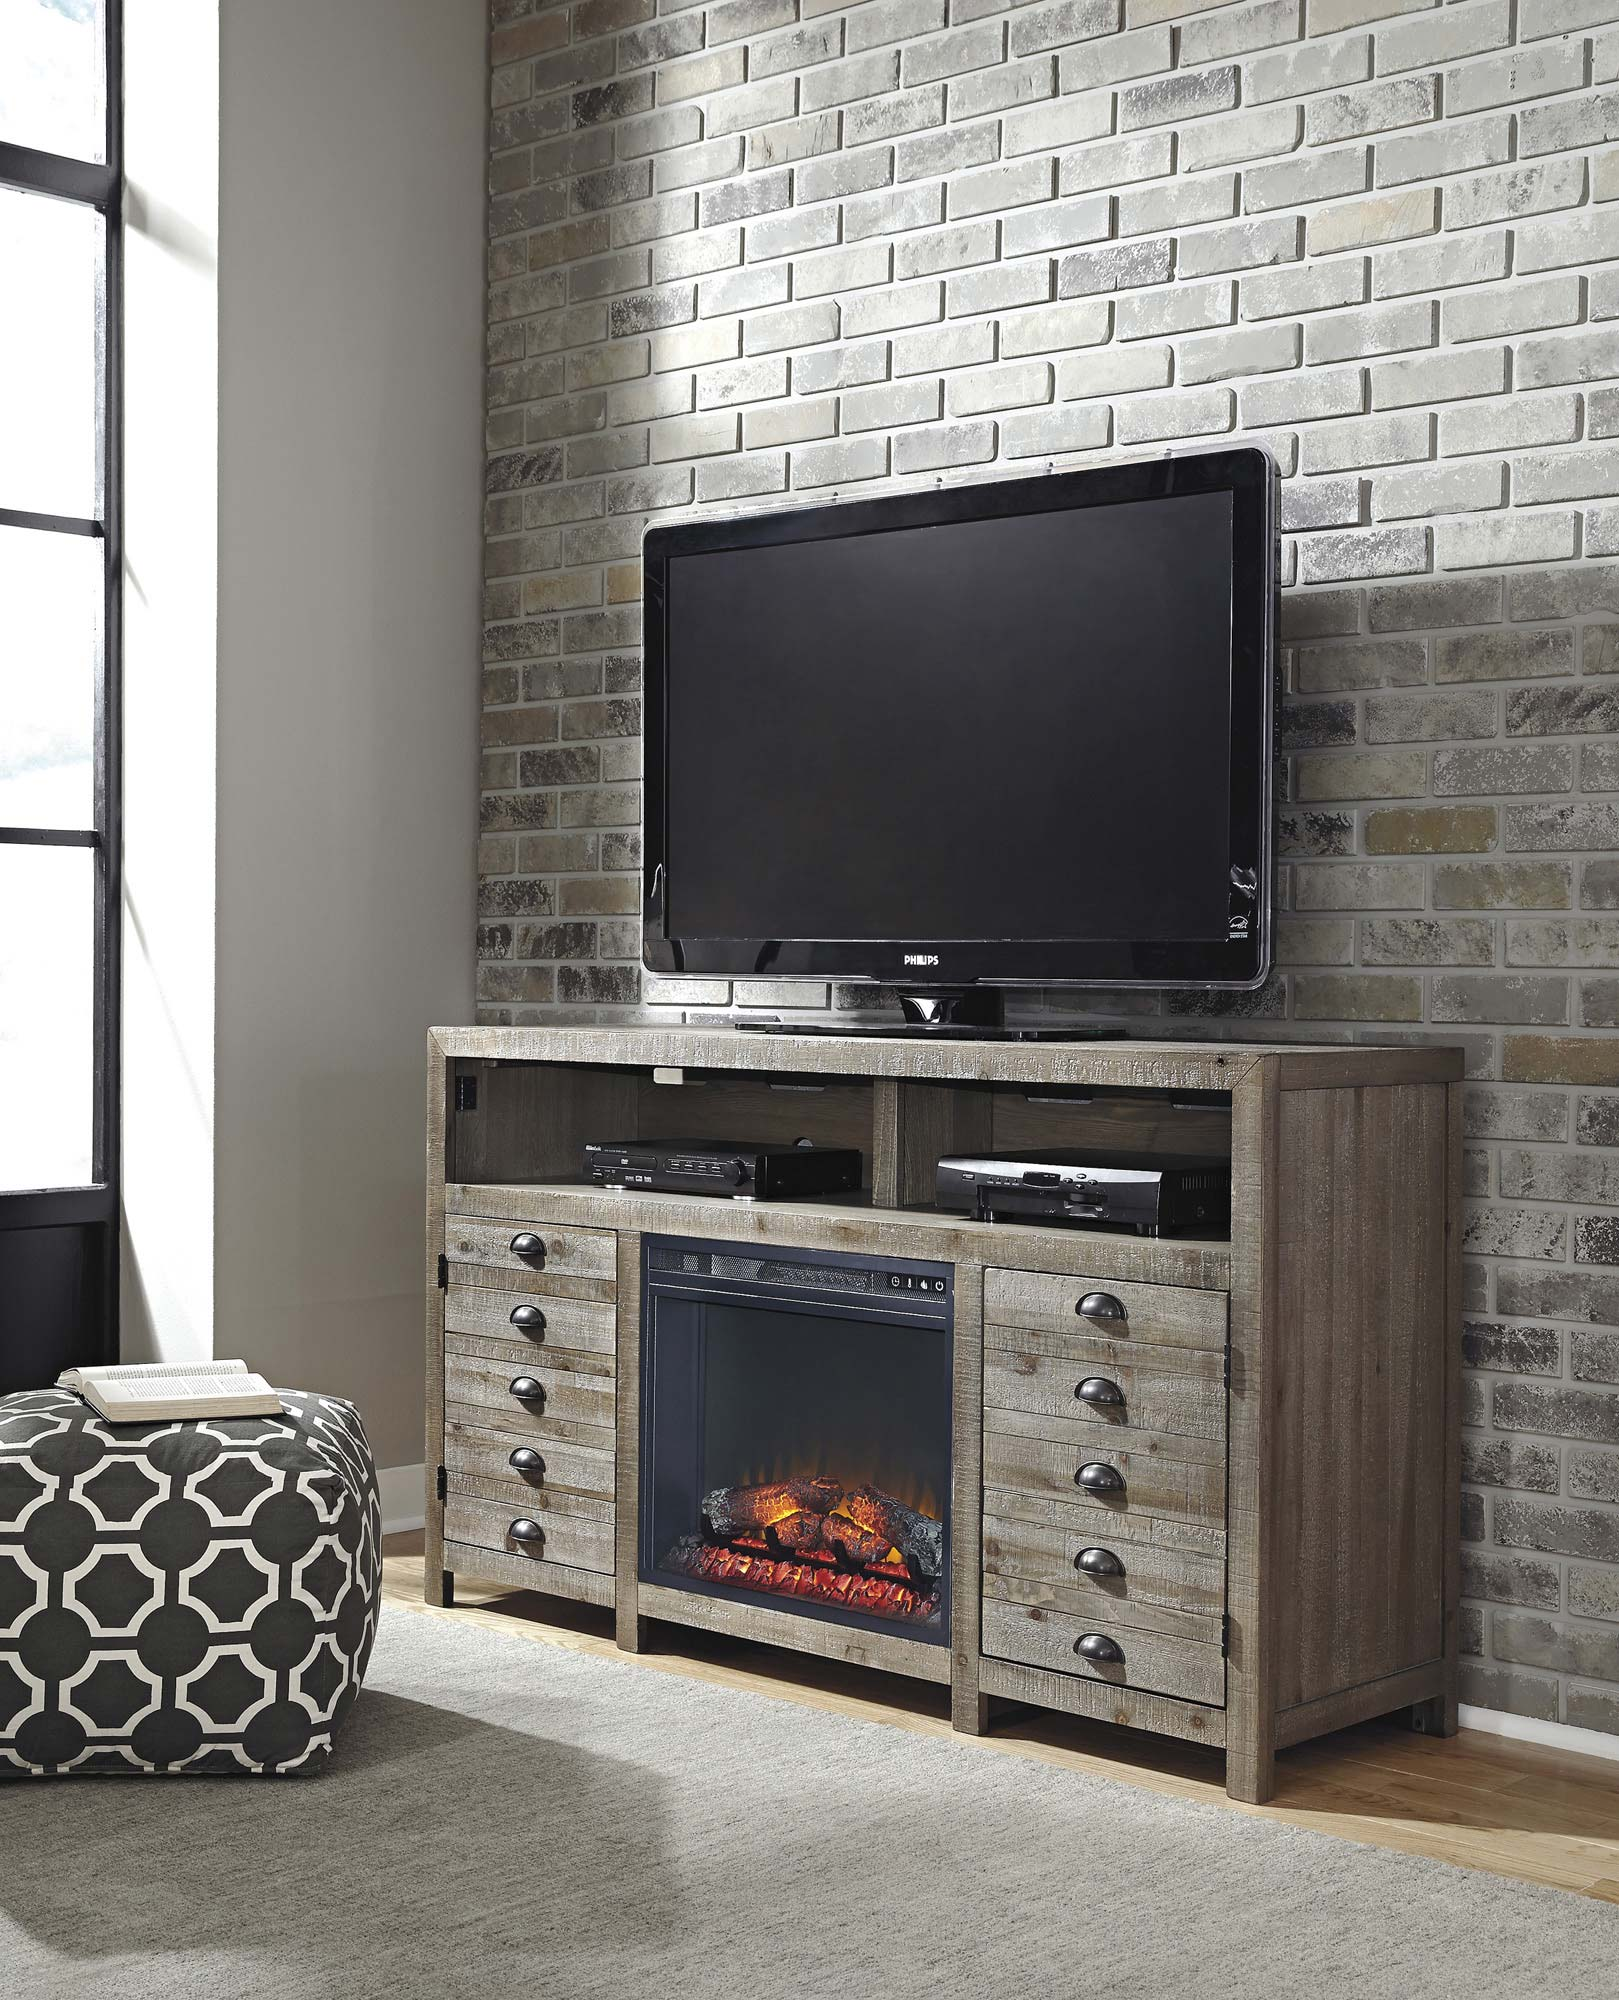 Ashley Home Furniture Albuquerque: [WANT] Keeblen TV Stand W/ Fireplace Option By Ashley